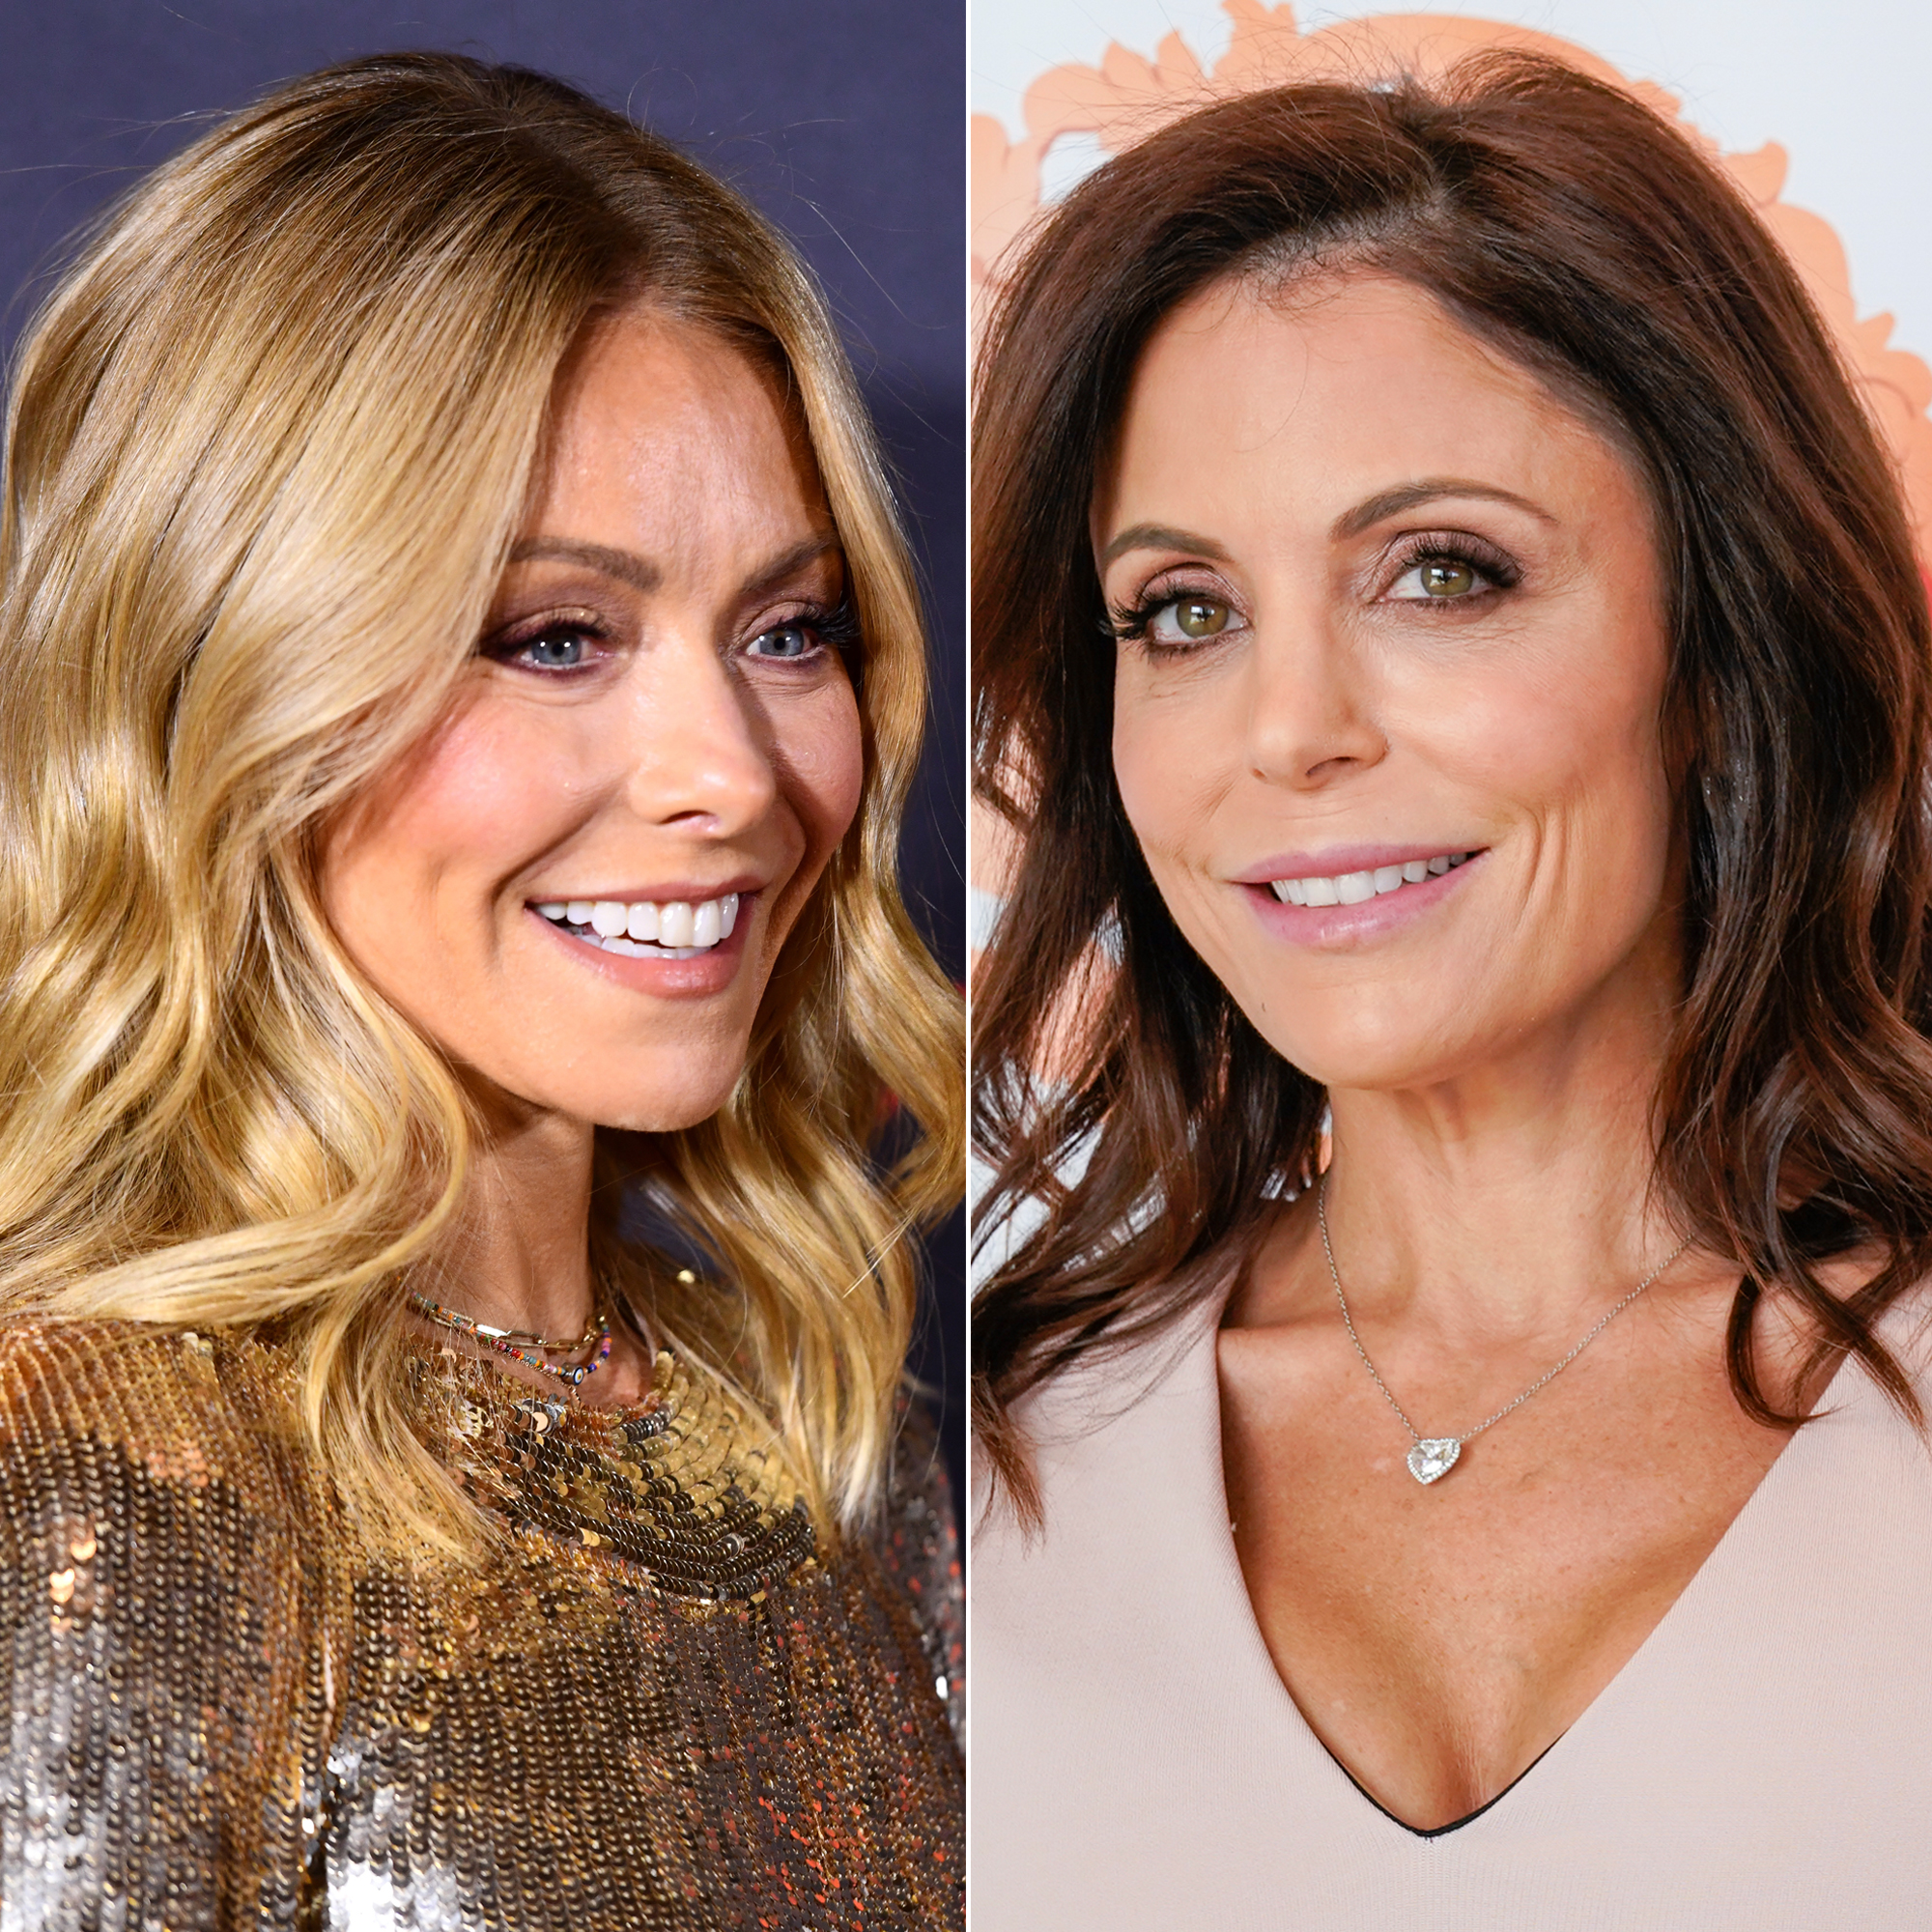 Kelly Ripa, Bethenny Frankel and More Share Their Super Bowl Sunday Eats - Kelly Ripa and Bethenny Frankel.